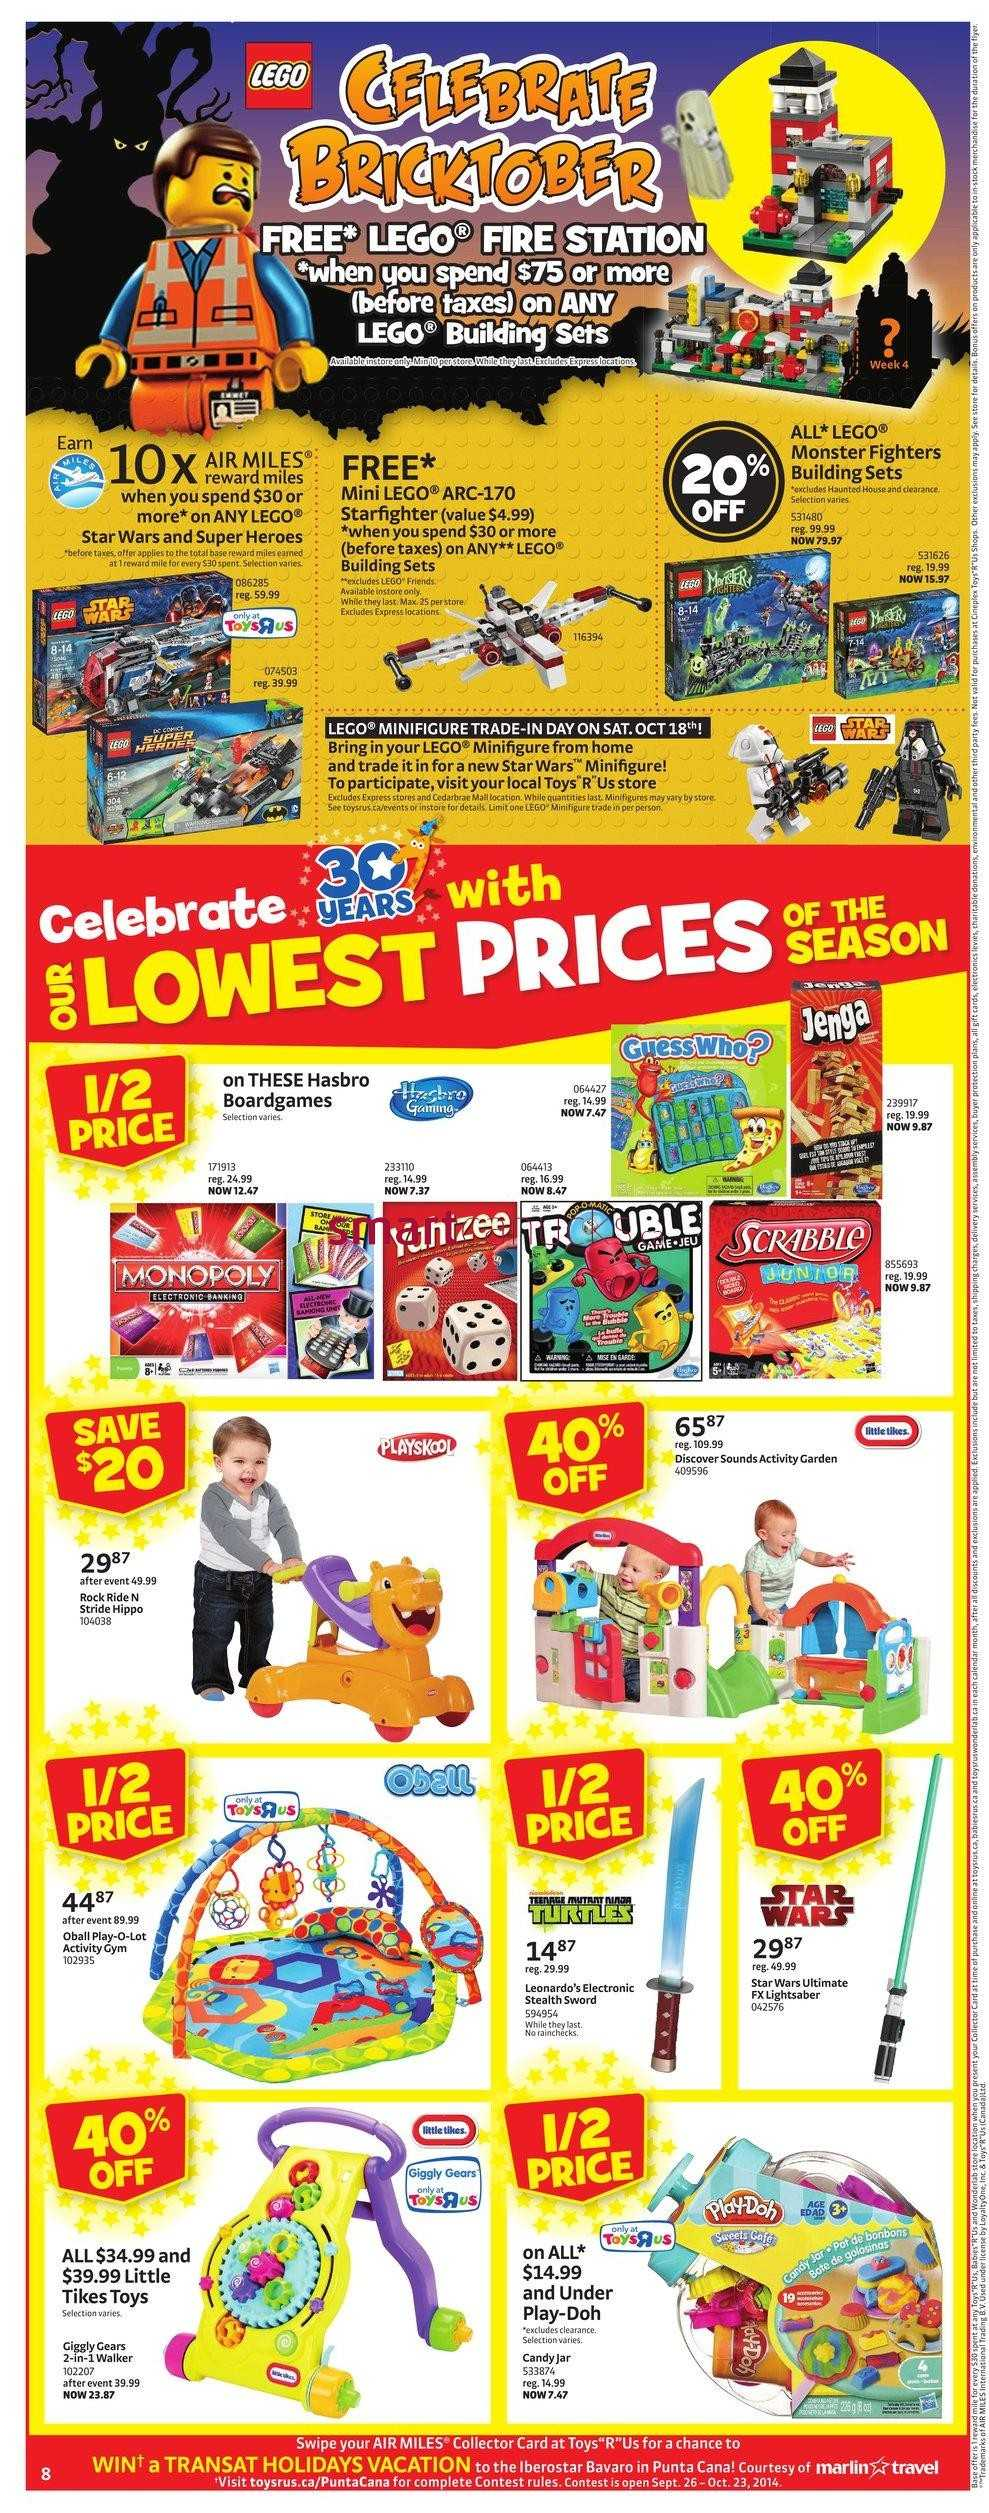 All Toys Toys R Us : Toys r us flyer october to